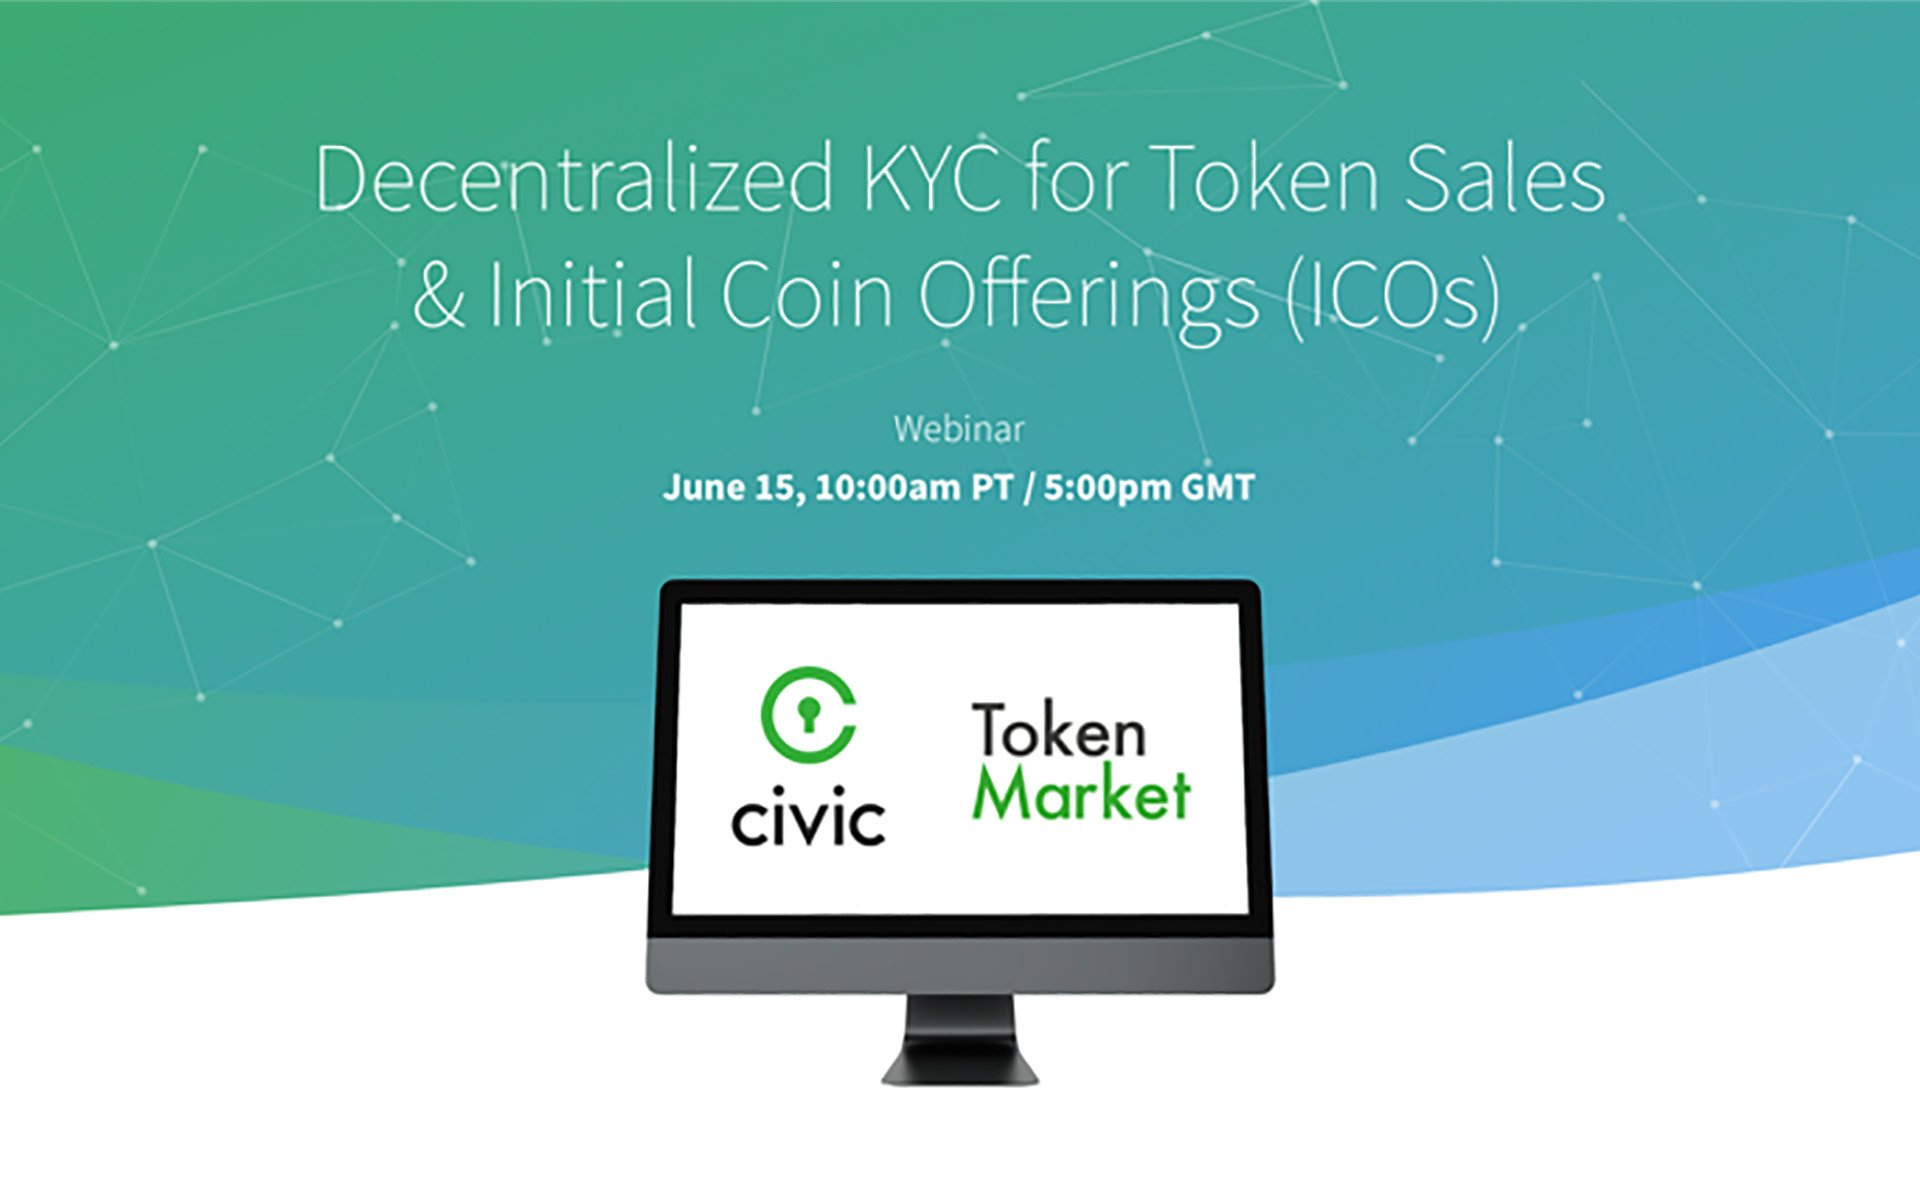 TokenMarket Joins Civic, Leading Blockchain Identity Technology Provider, for First Webinar on Decentralized Identity